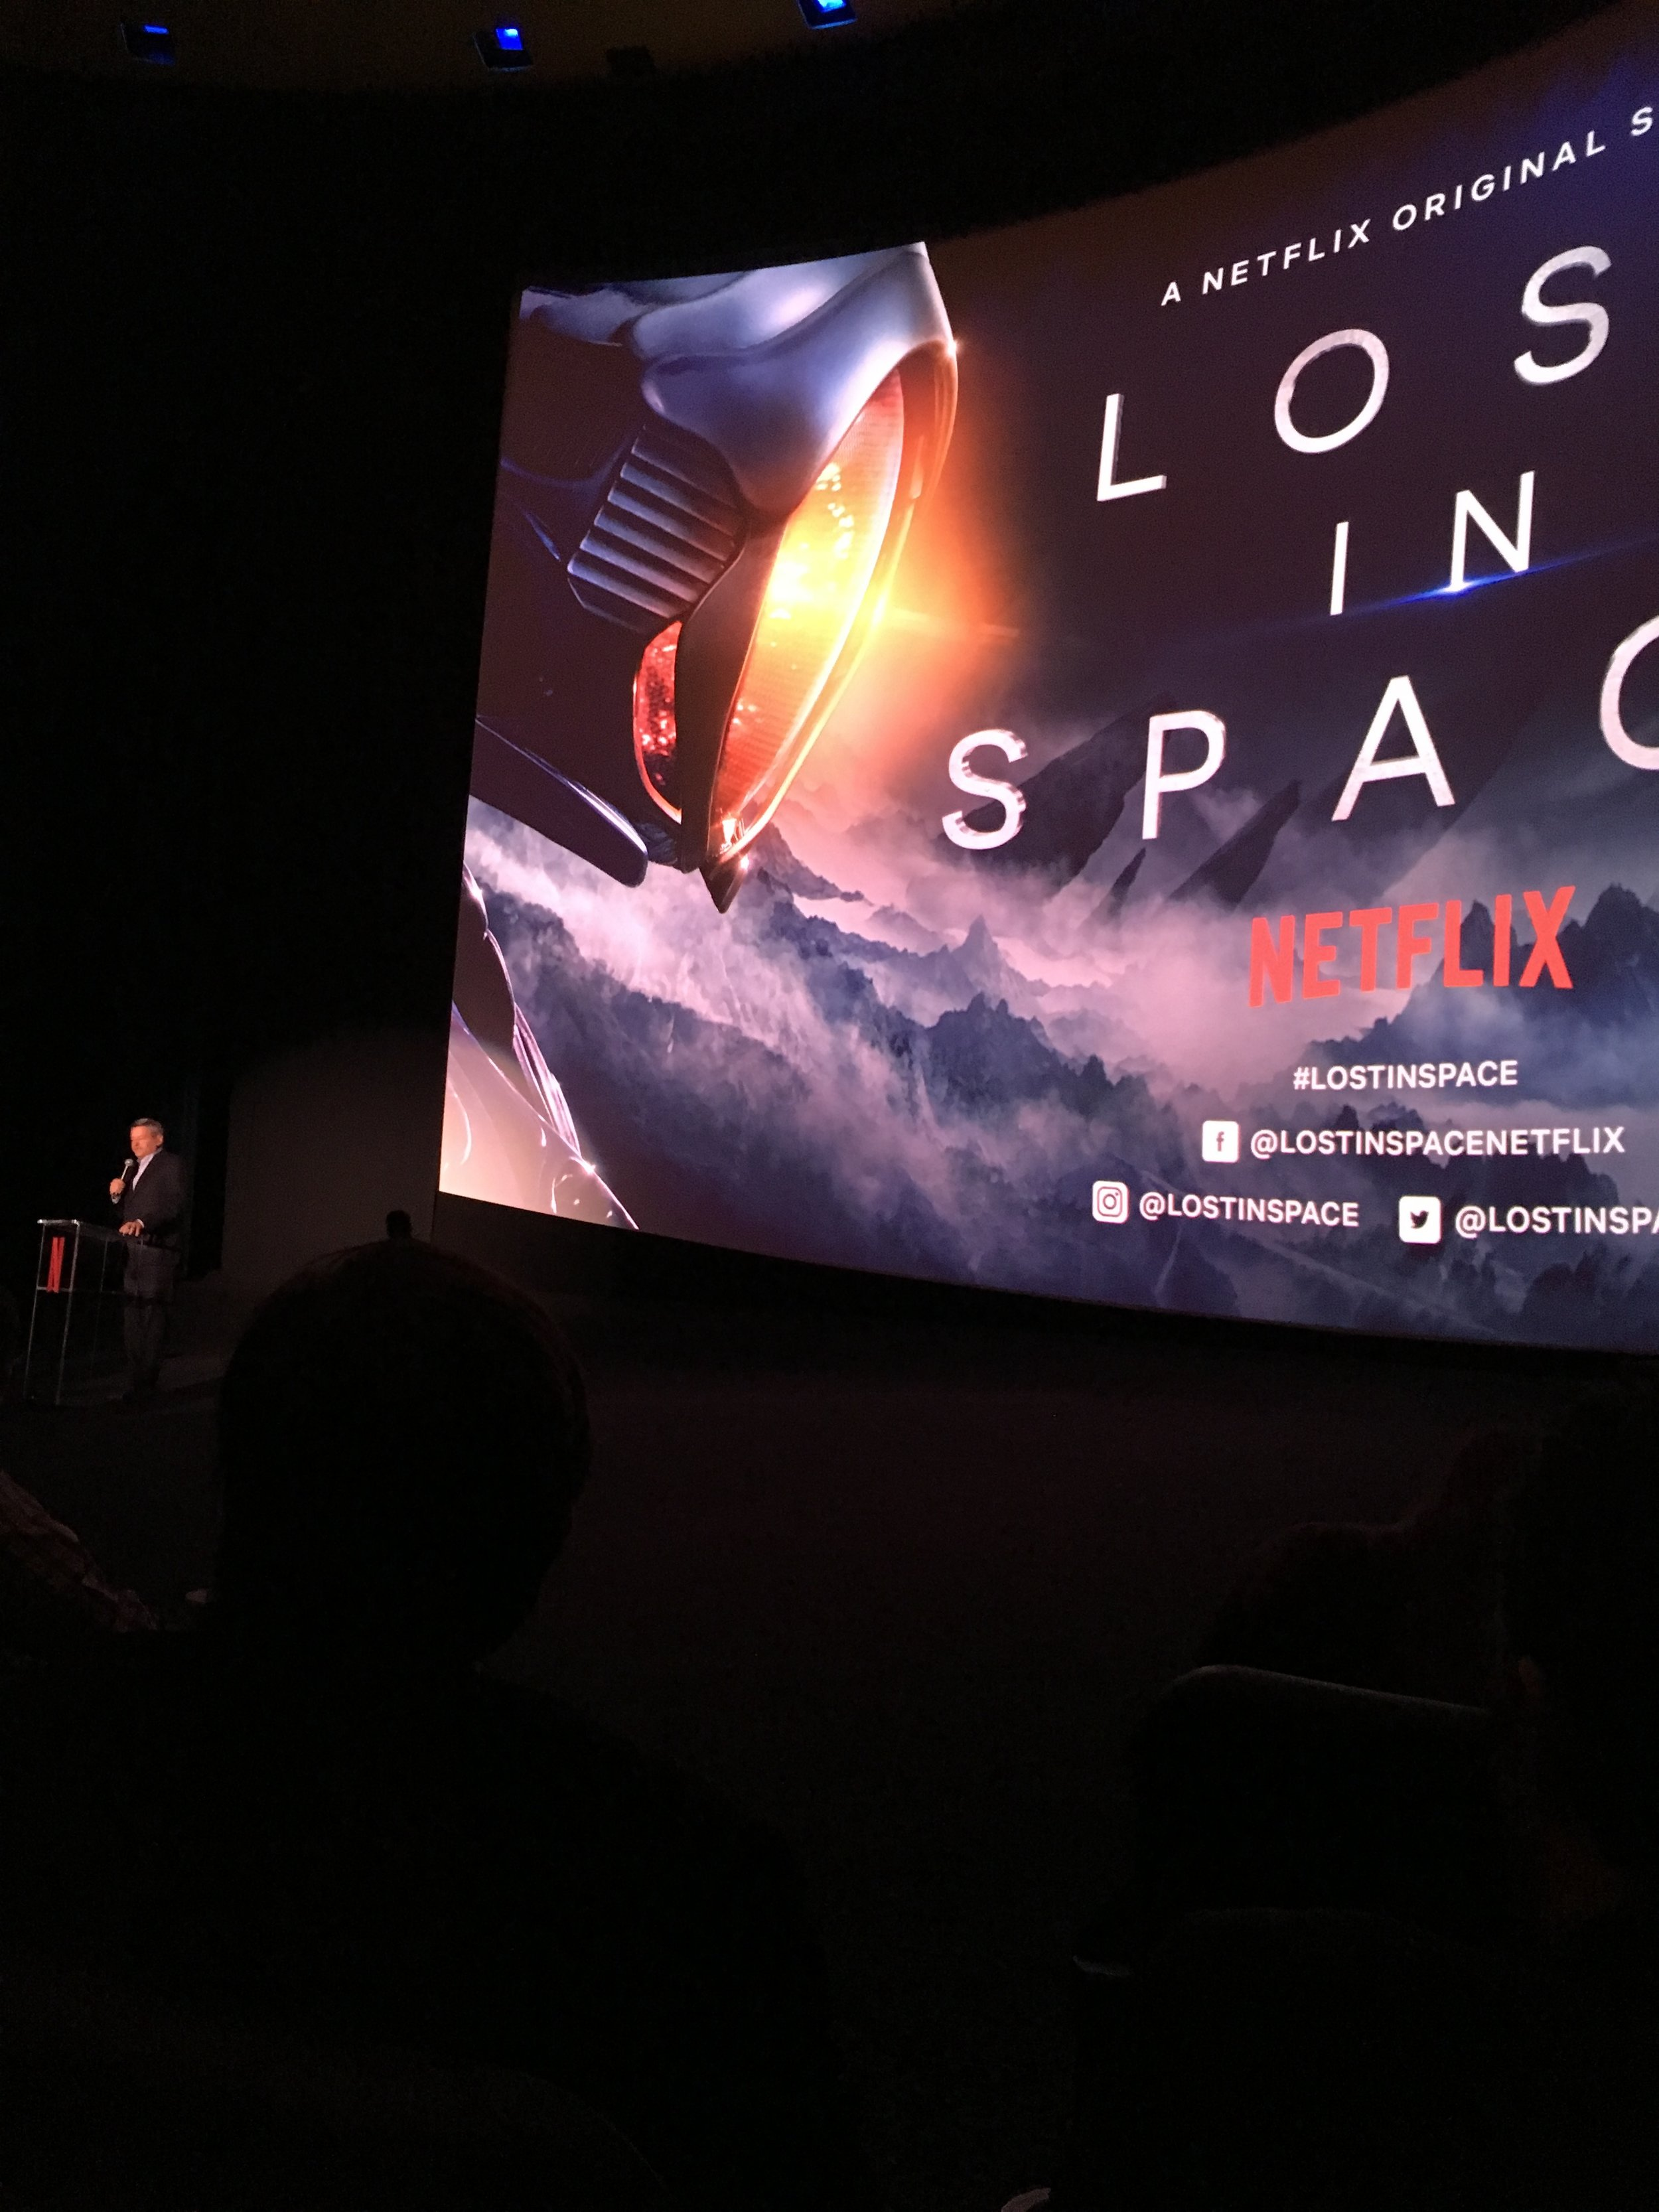 Ted Sarandos, the chief content officer at Netflix introducing the show.